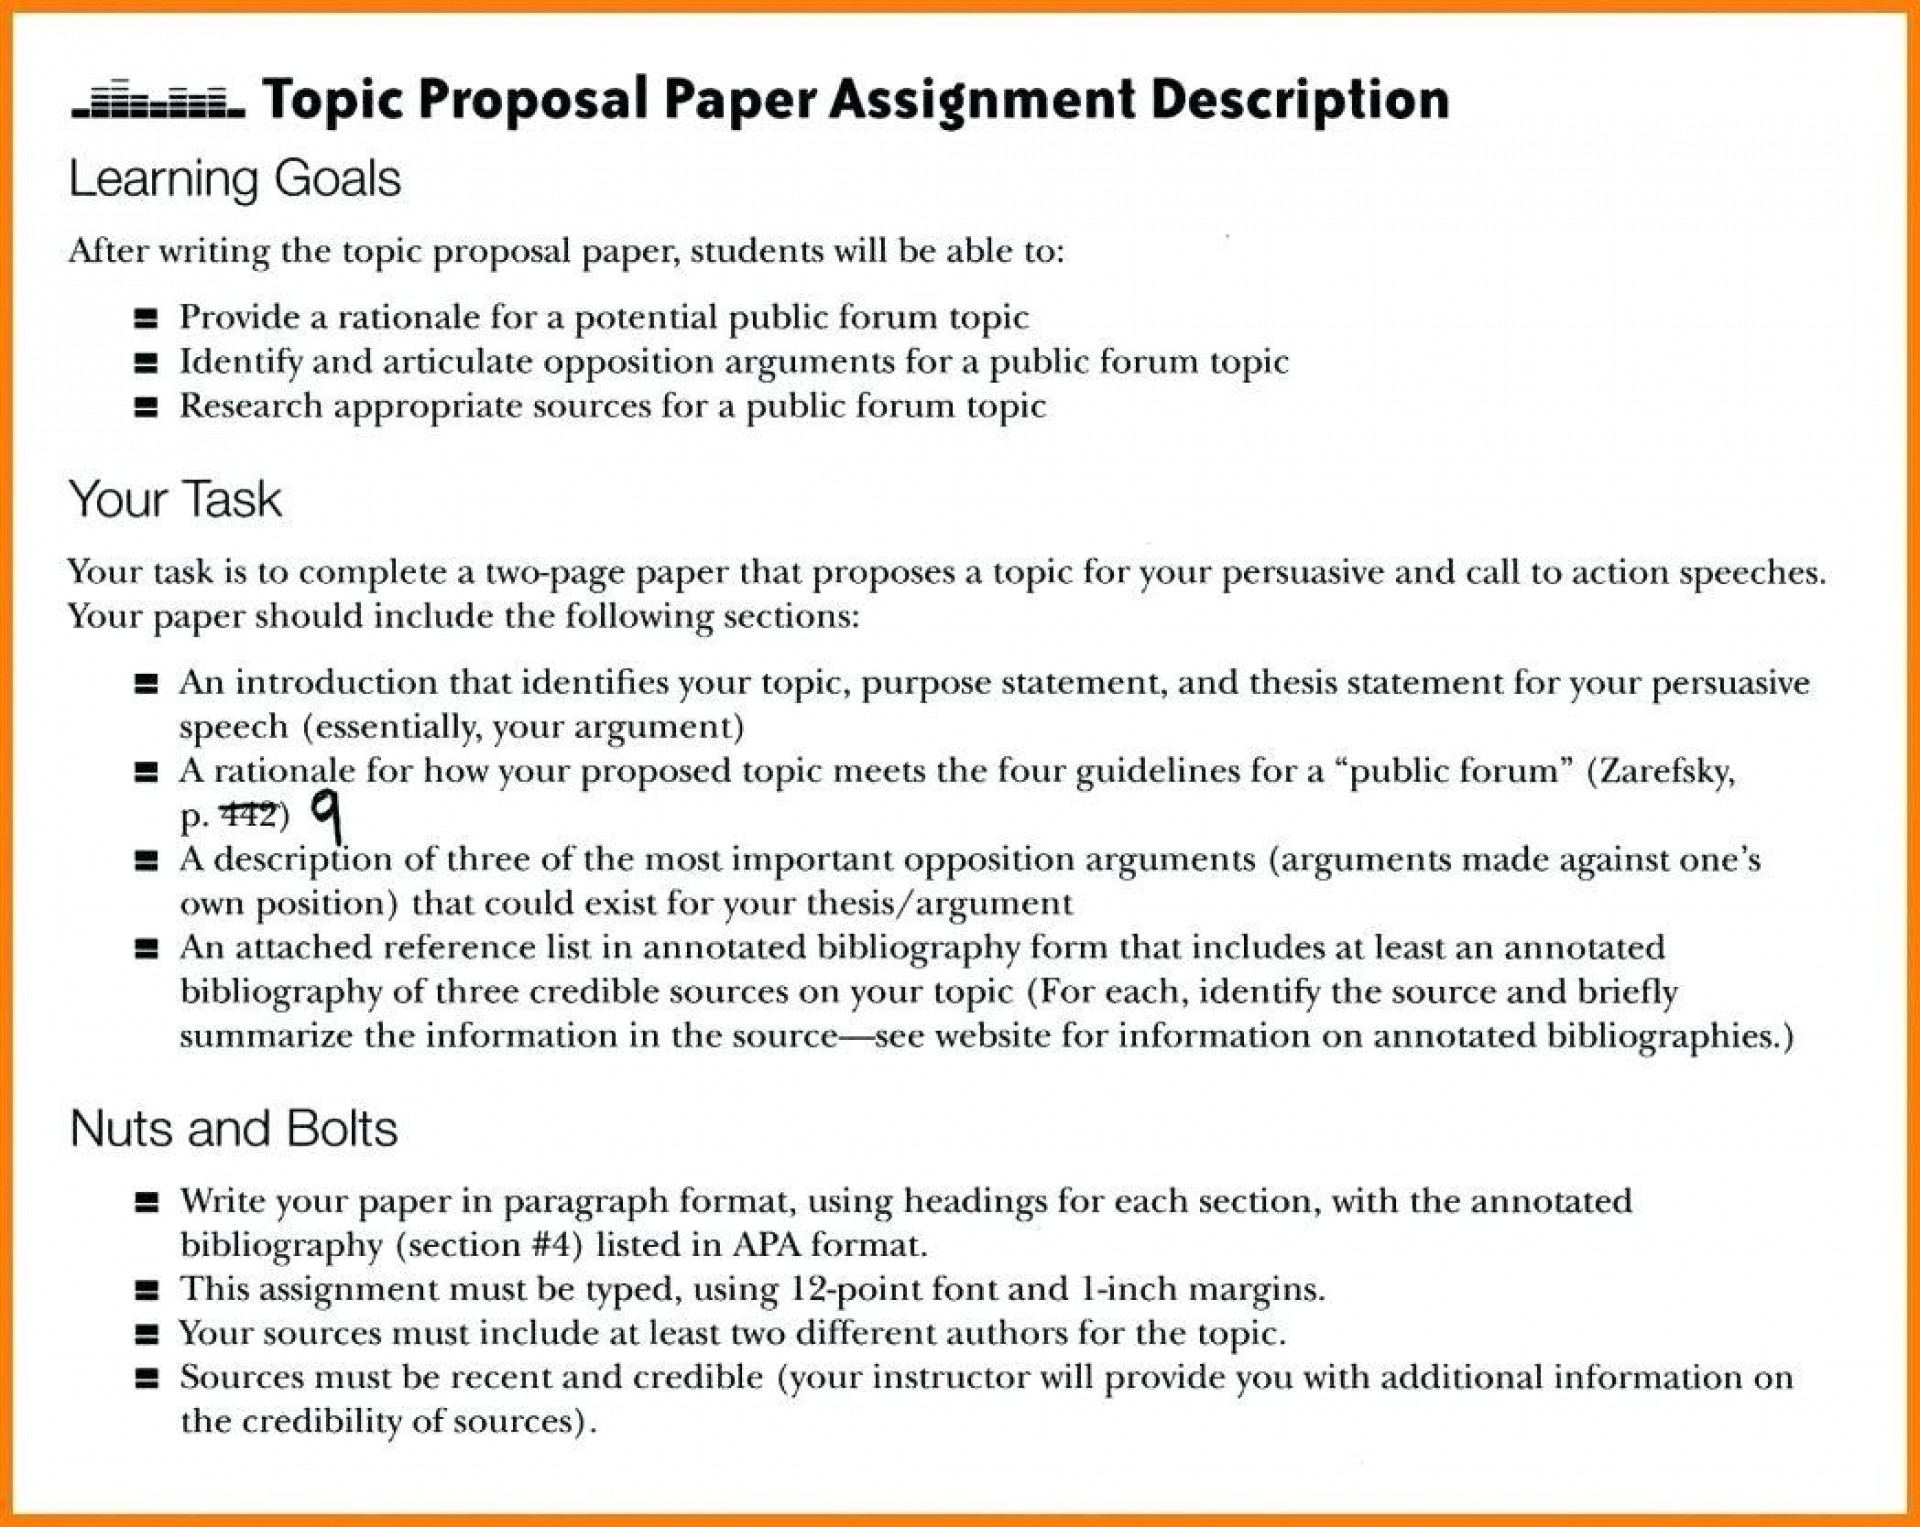 012 Annotated Bibliography Apa Template Healthy Eating Essayspers Also Topics For Argumentative Researchper Sample Proposal Format Web How To Write Topic Staggering A Research Paper Example Writing 1920